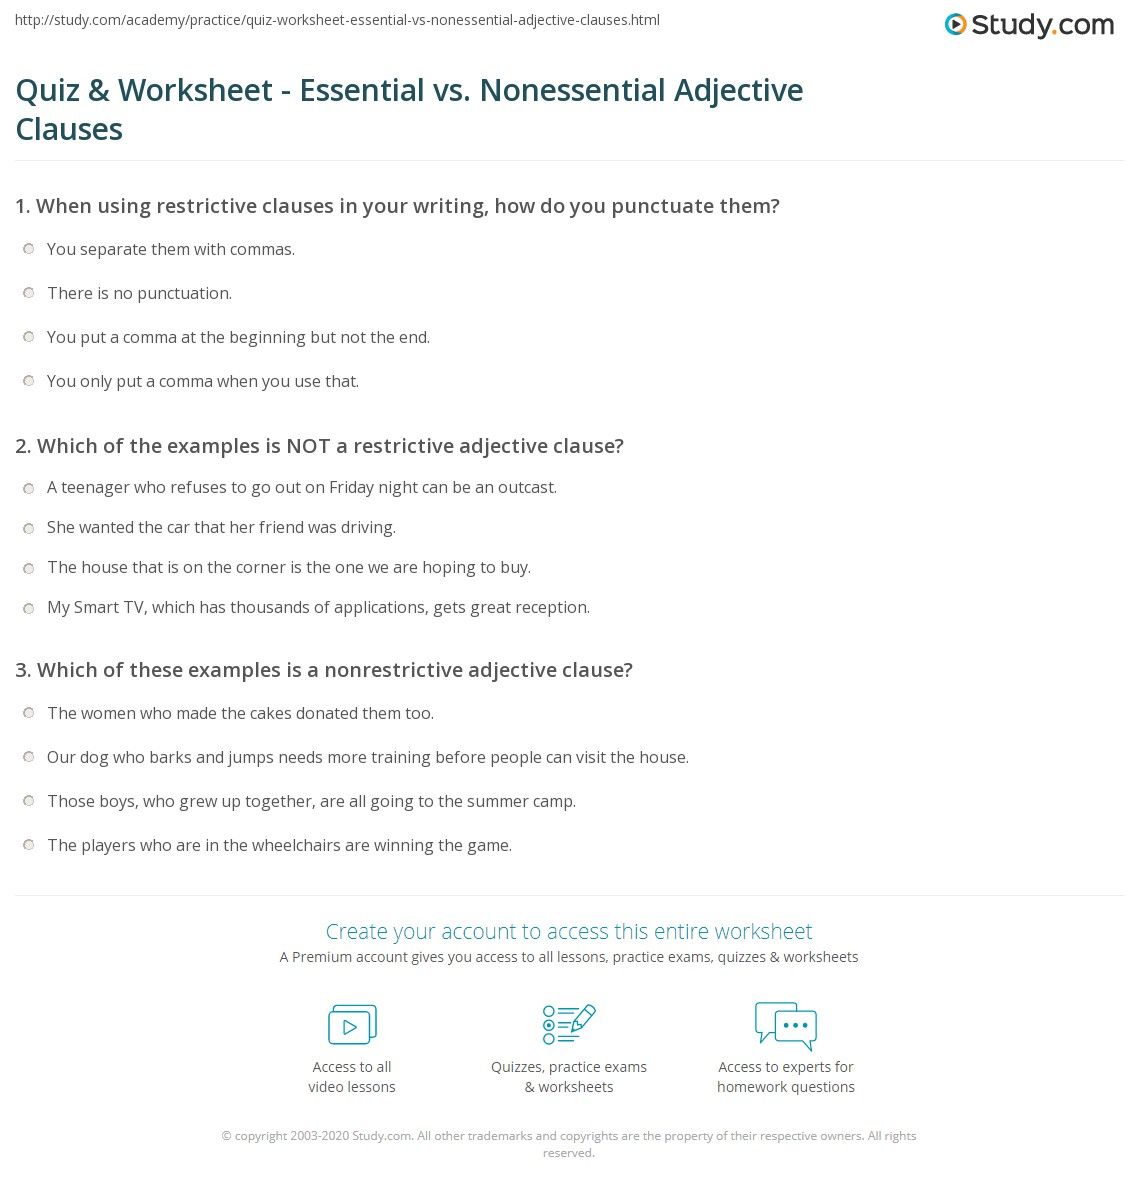 hight resolution of Quiz \u0026 Worksheet - Essential vs. Nonessential Adjective Clauses   Study.com